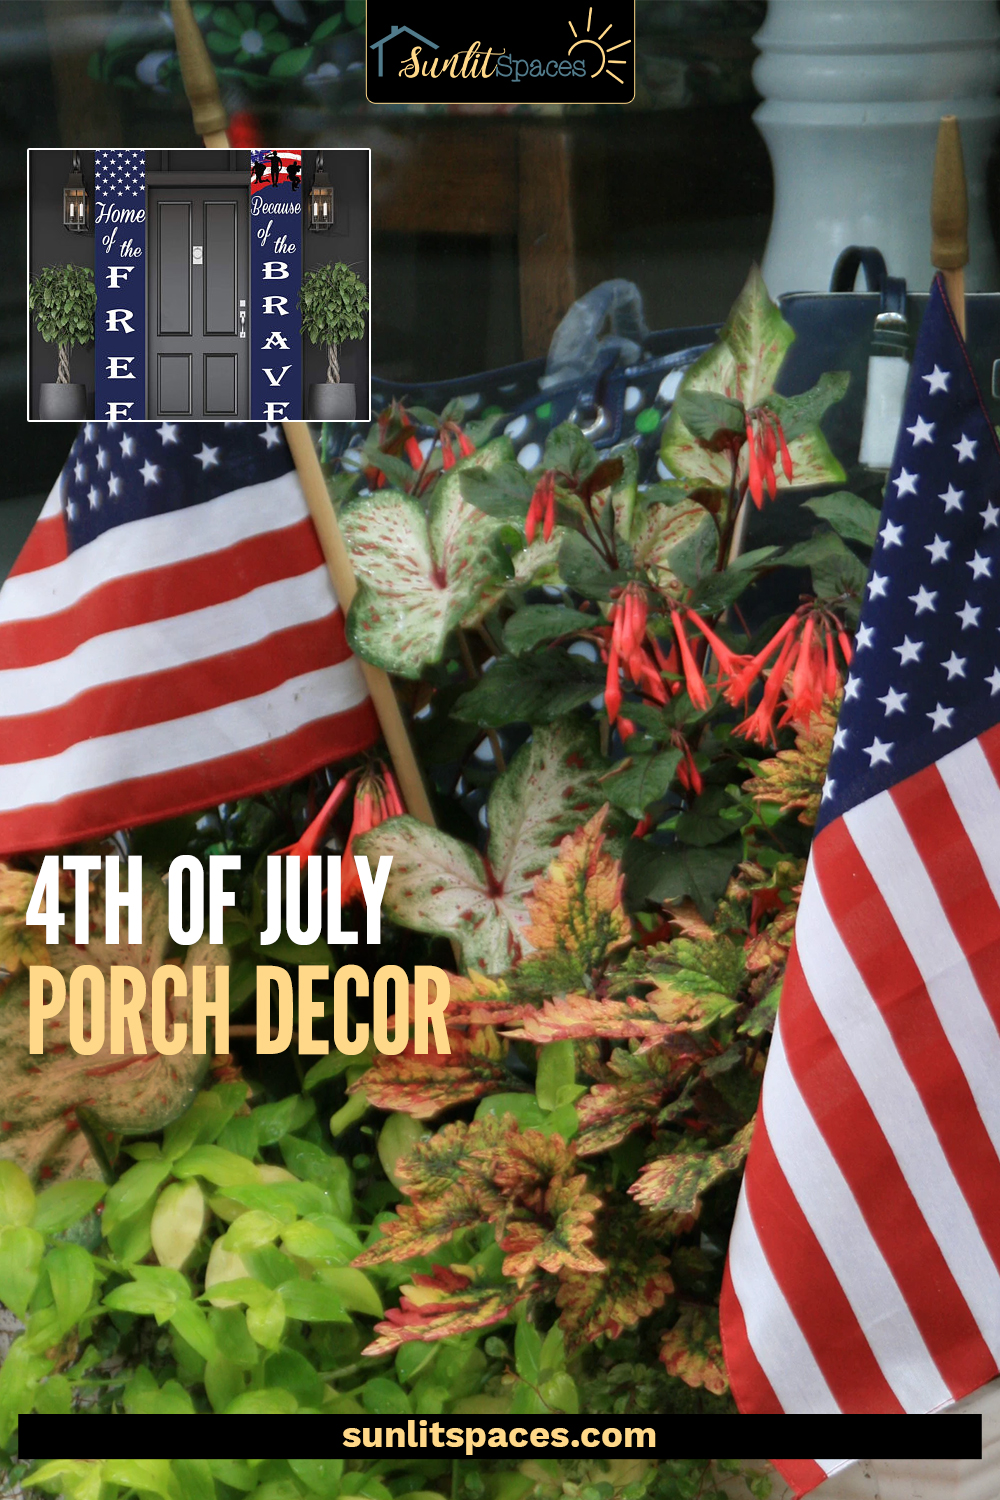 4th of July porch decor with tons of charm! Etsy is the place for patriotic decor to dress up your porch this July. See the unique finds that can be yours! #sunlitspacesblog #4thofjulyporchdecor